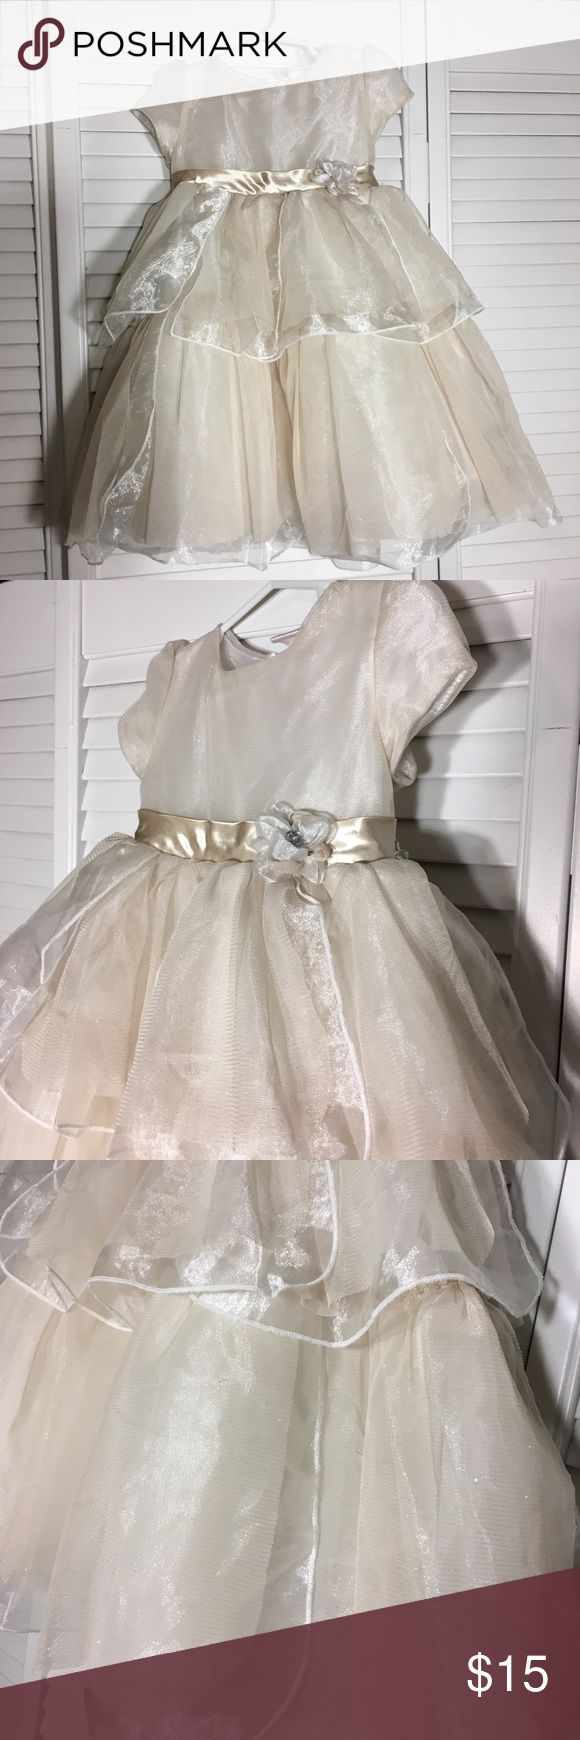 Toddler Girls Cream Sparkle Party Dress Your little one will feel like a princess in this gorgeous, sparkly cream/gold dress. Only worn once, EUC. Size 3T. Smoke free, pet free home Nanette Girl Dresses Formal